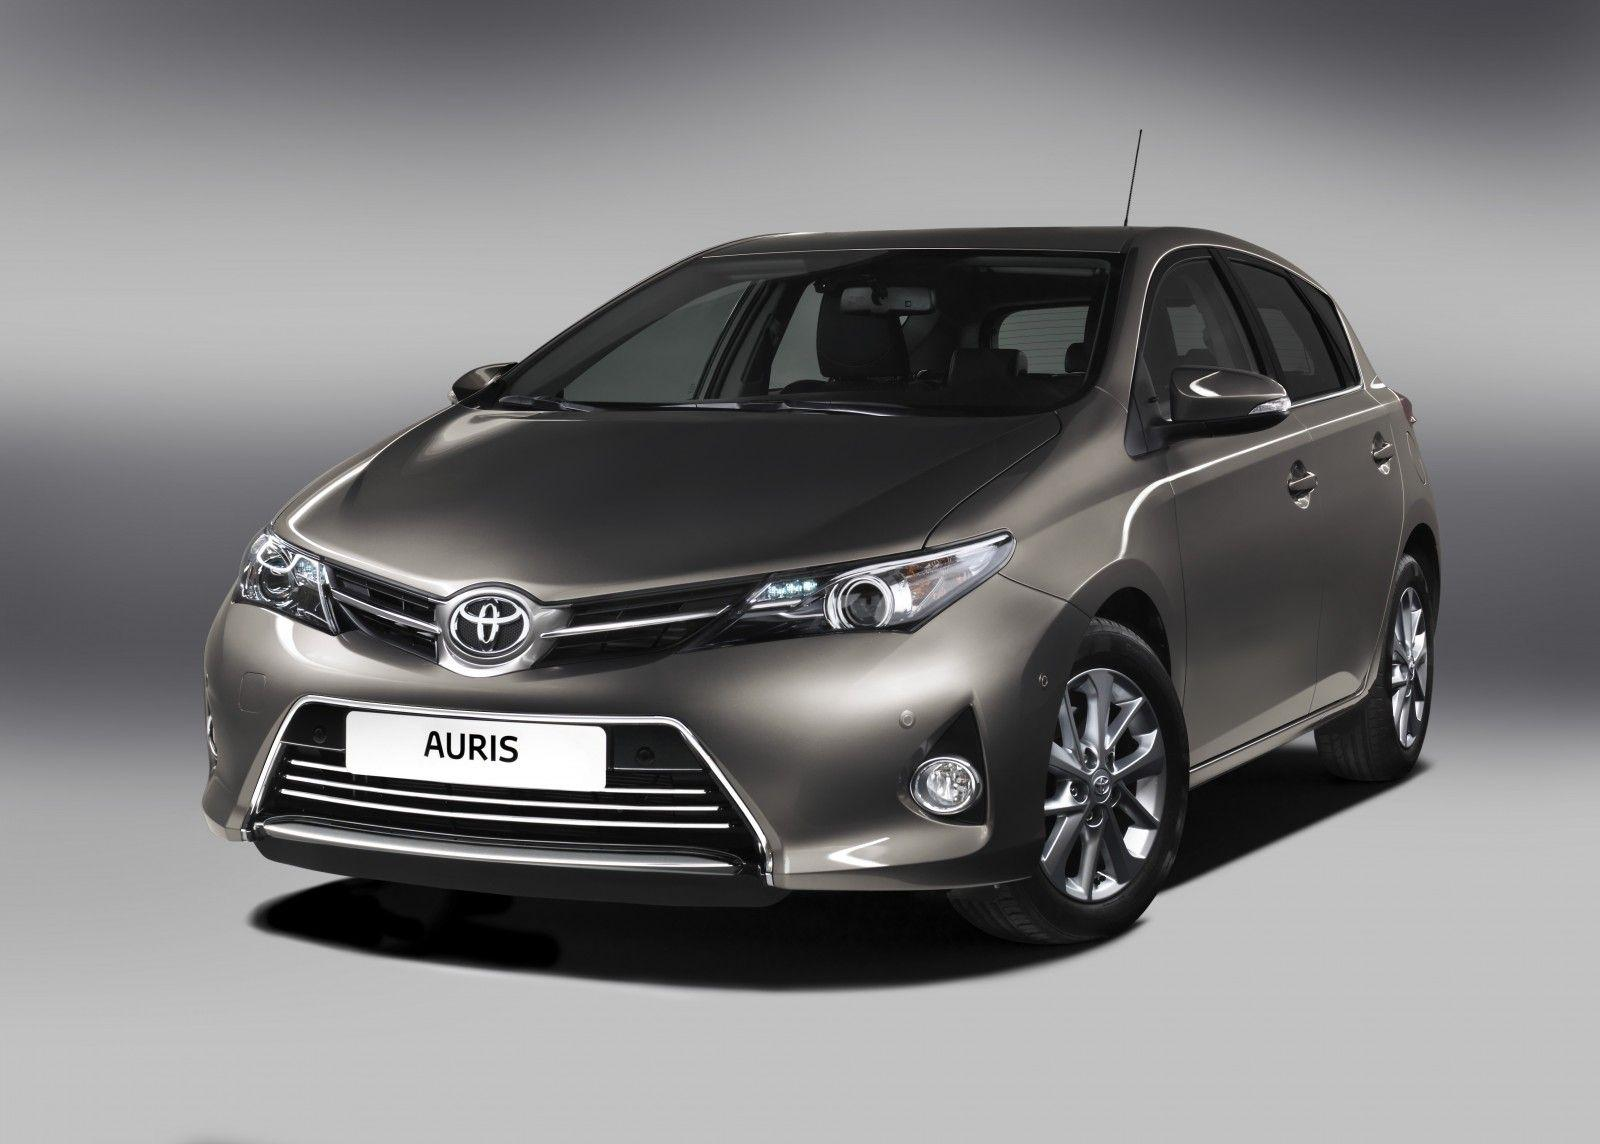 Wallpapers : Toyota, 2013, netcarshow, netcar, car image, car photo